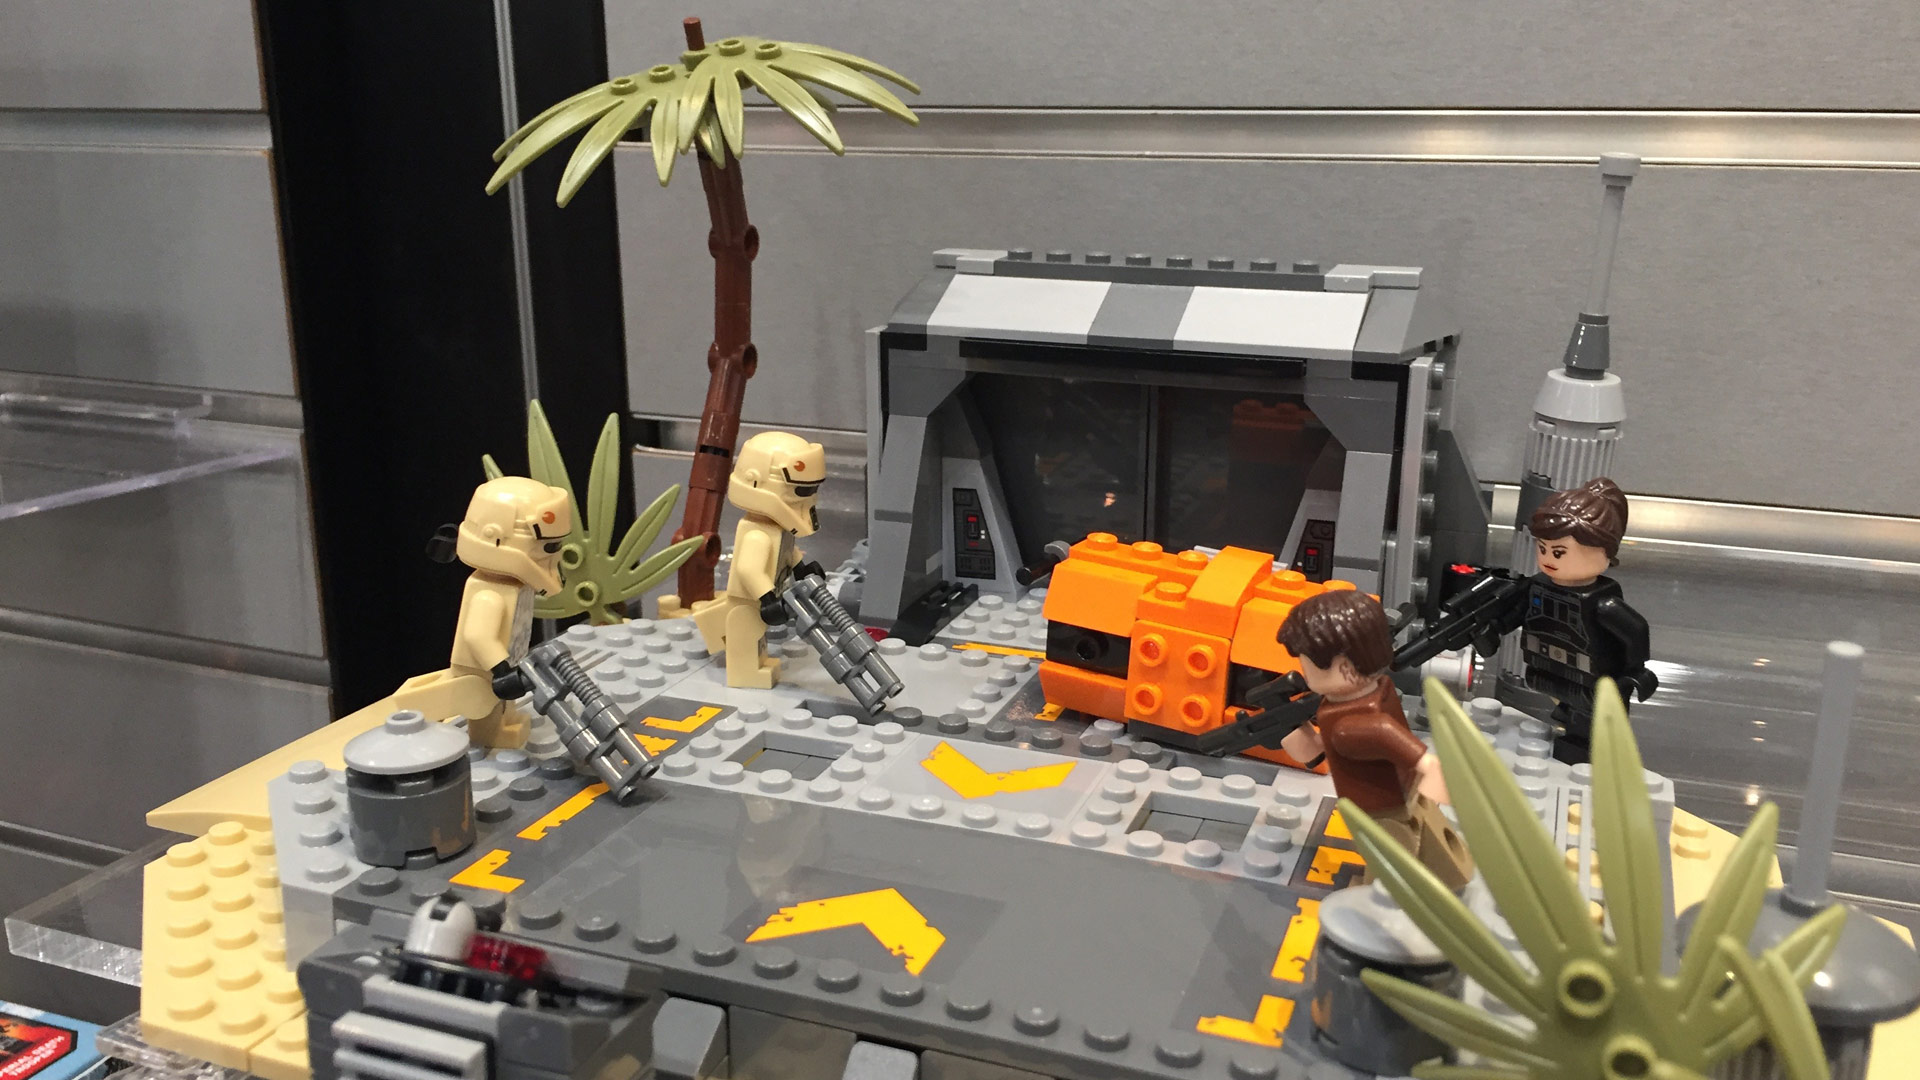 LEGO Star Wars Set 75171 Battle on Scarif at Toy Fair 2017